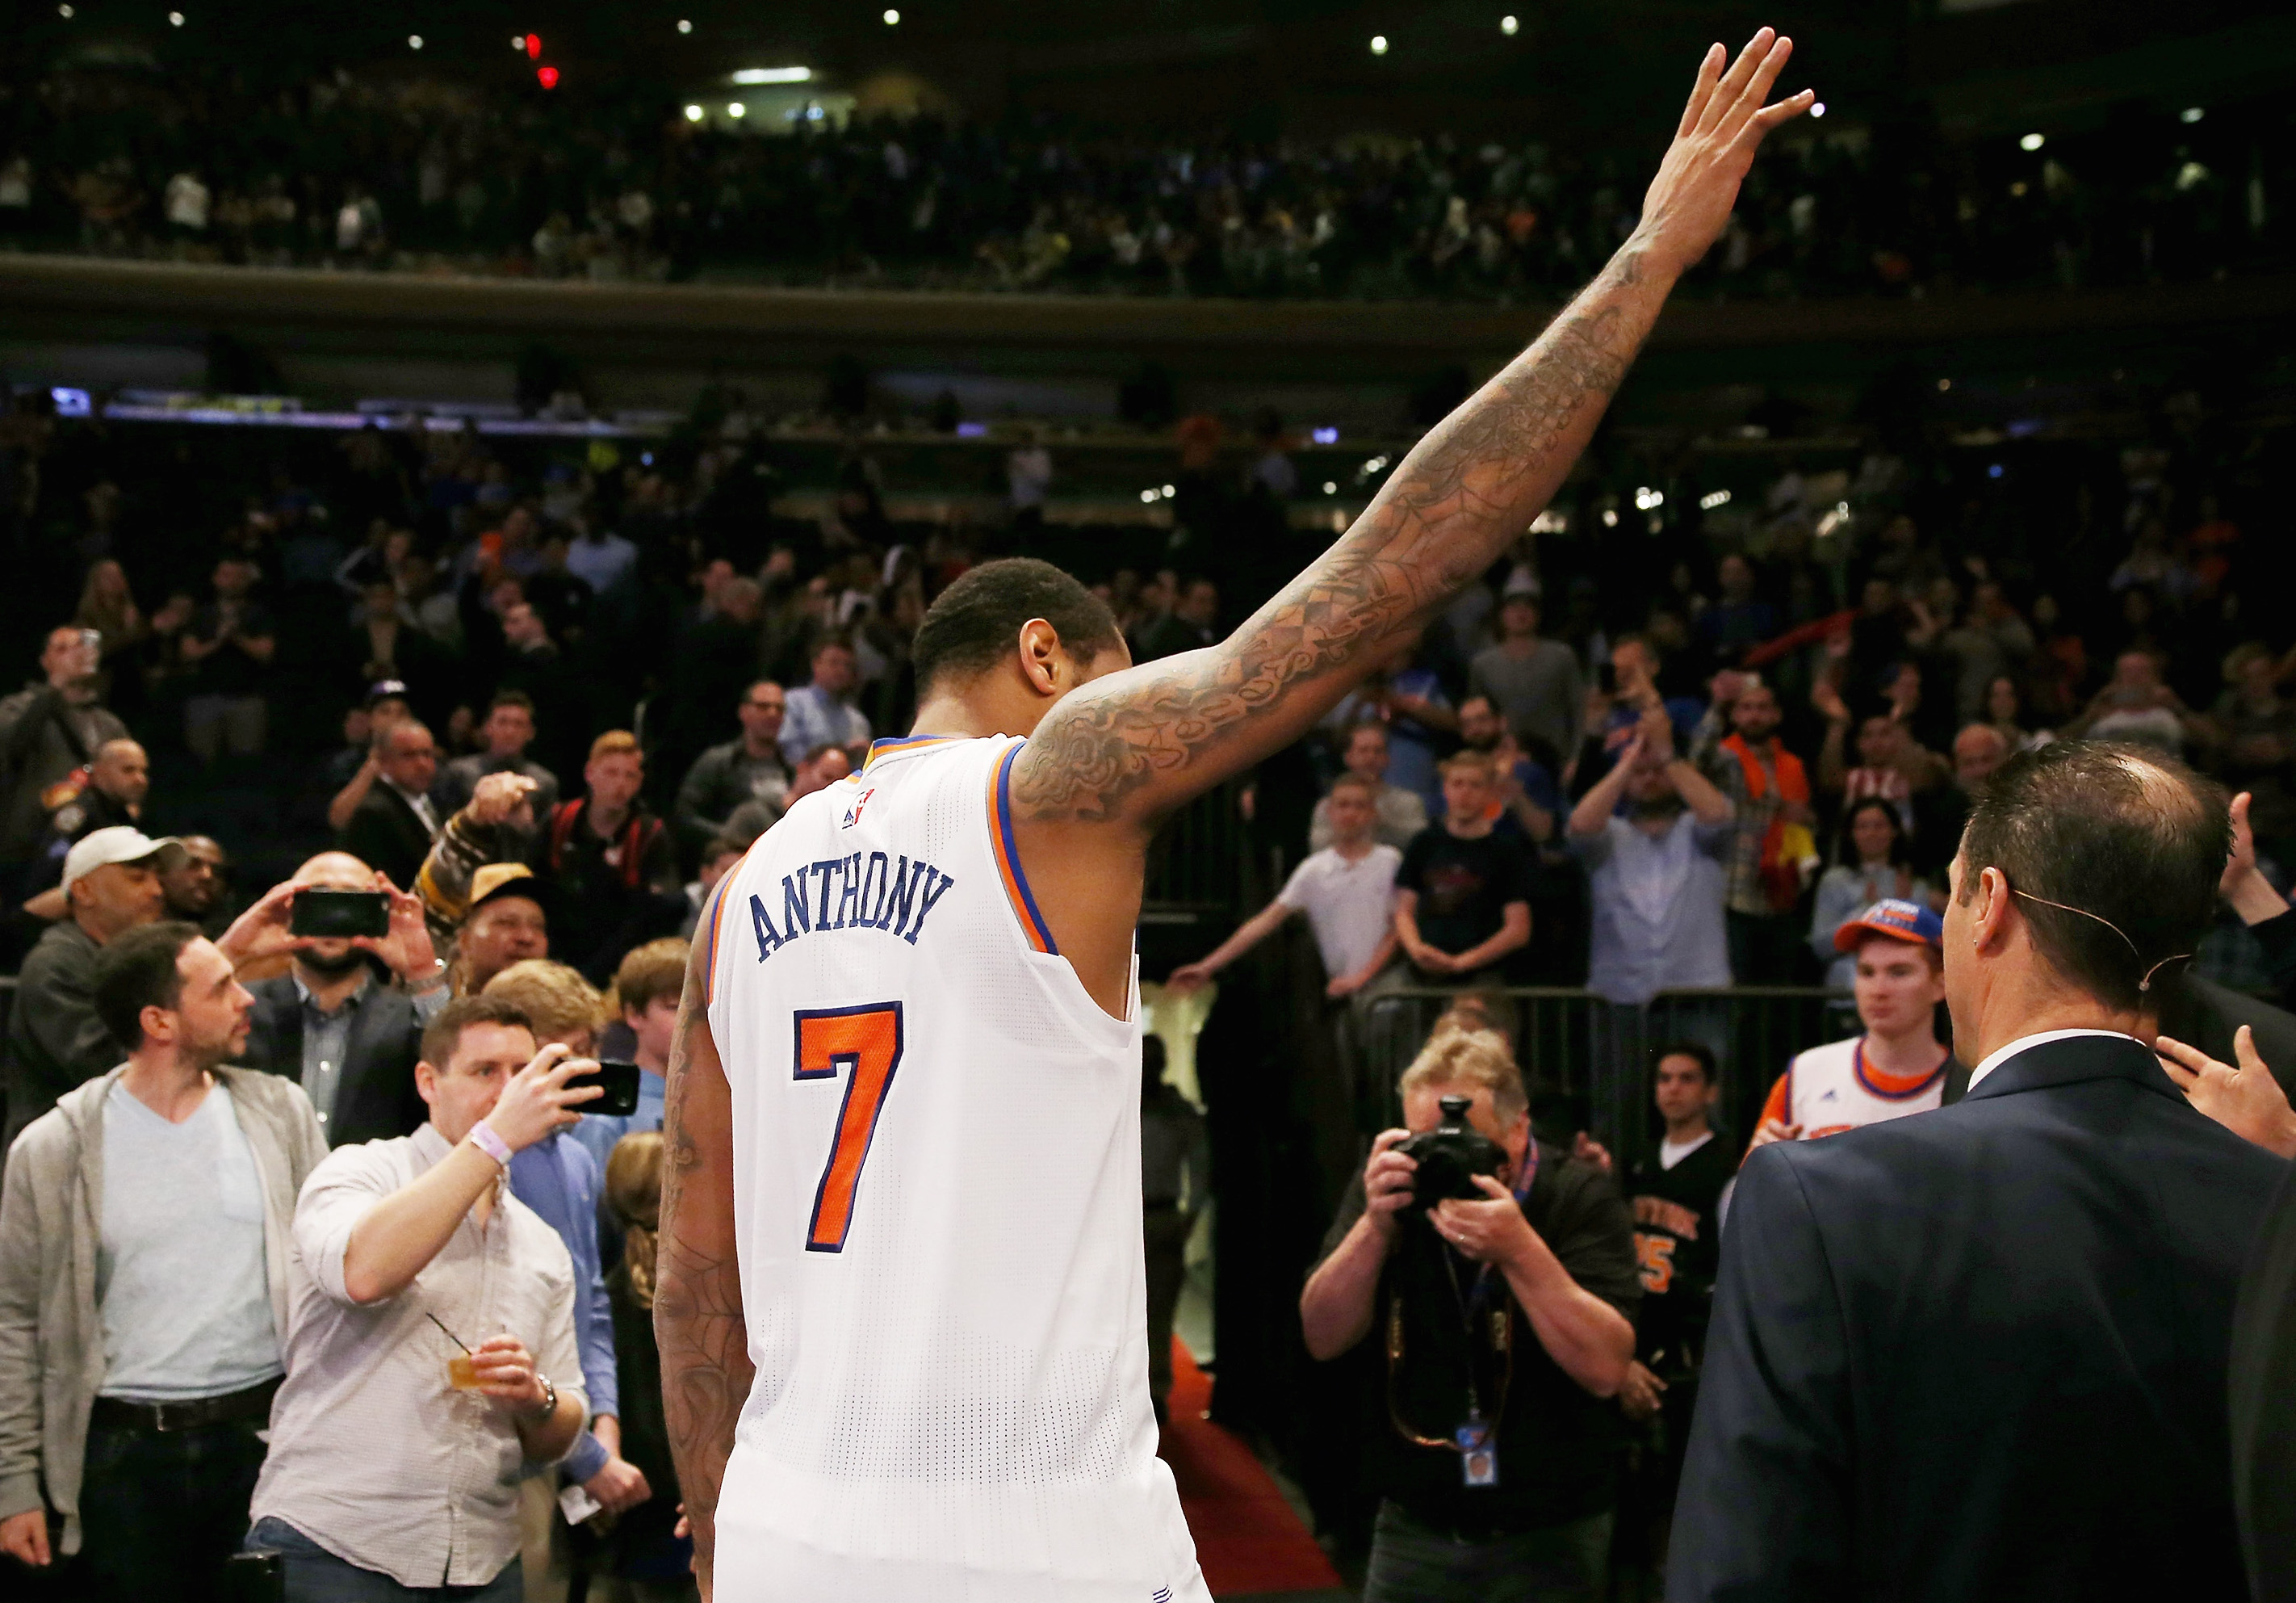 Despite Leaving the Knicks on Bad Terms, Melo Penned a Touching Love Letter to NYC On His Way Out